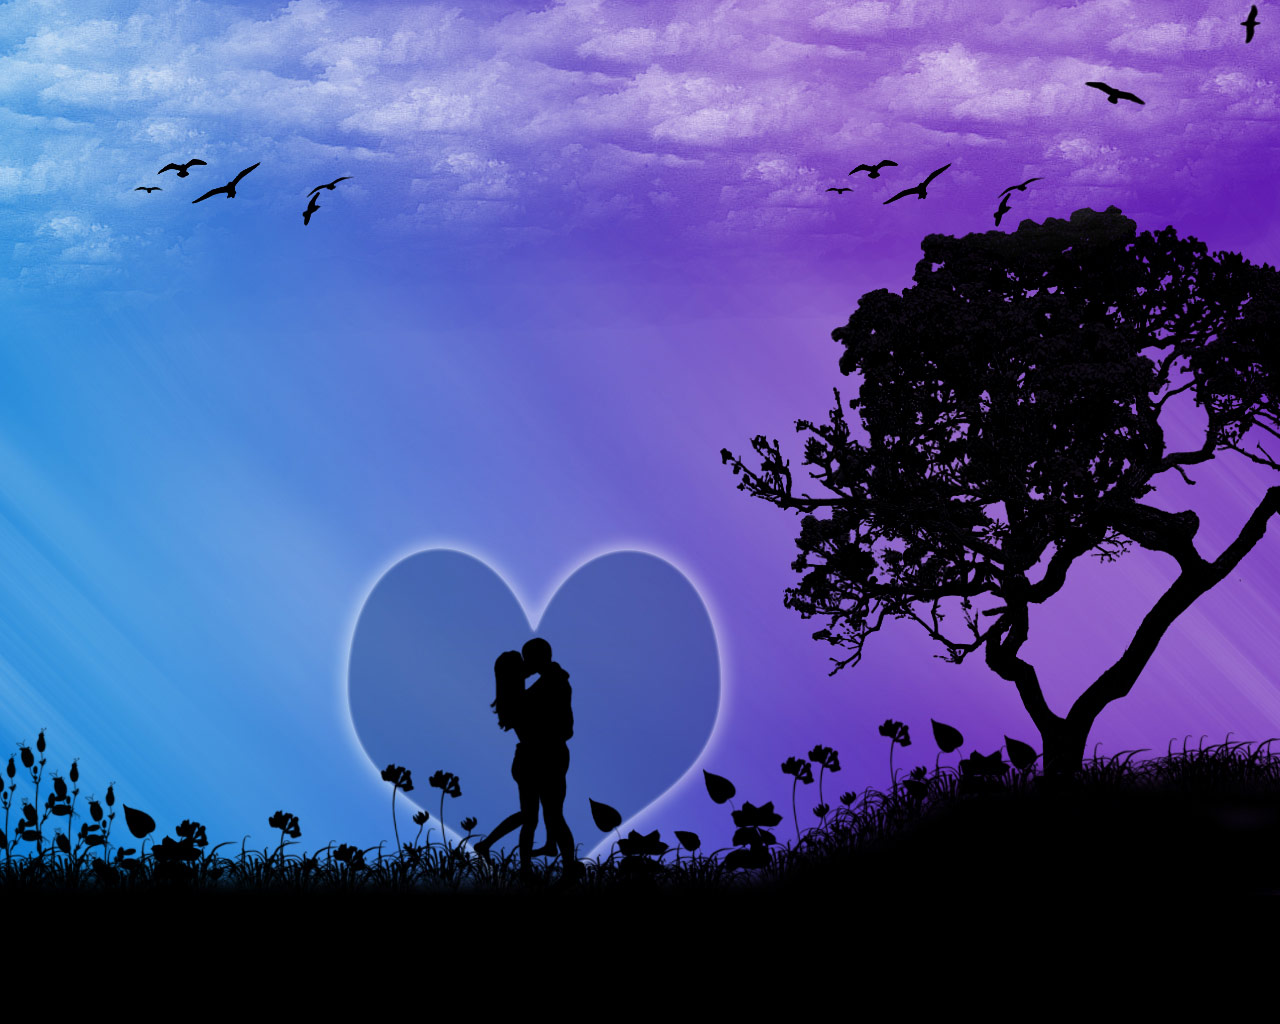 Love Wallpaper For Desktop Best : Free Wallpaper Dekstop: Real love wallpaper, love wallpapers free